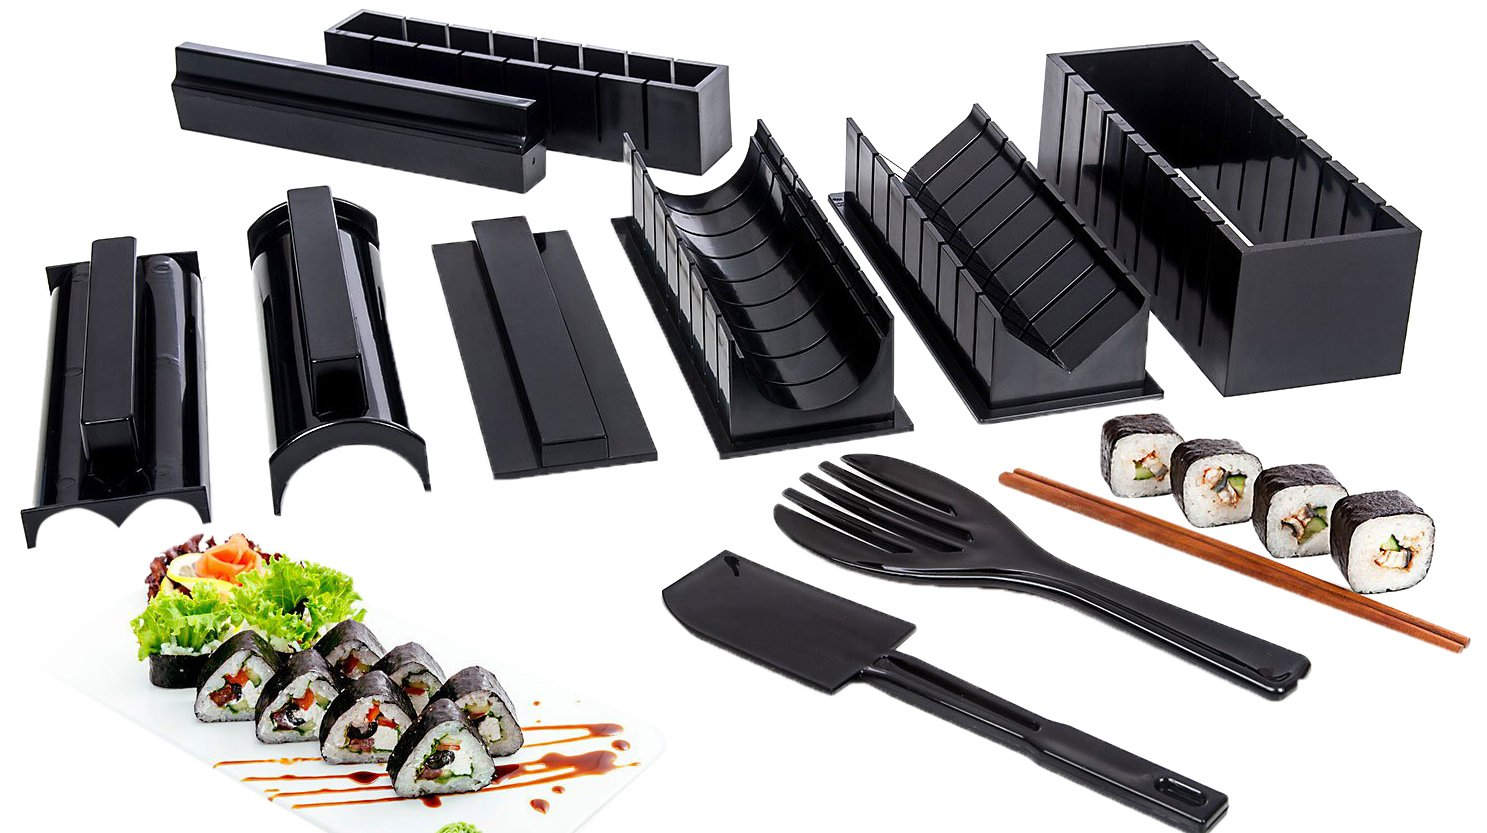 Sushi Making Kit-with Complete Rice Press Mold Set-in Various Shapes & Sizes-Round Triangle Square Rectangle Mickey Mouse Ears-Perfect Roll Maker Tools-for Maki Nigiri-Make Your Own Sushi At Home